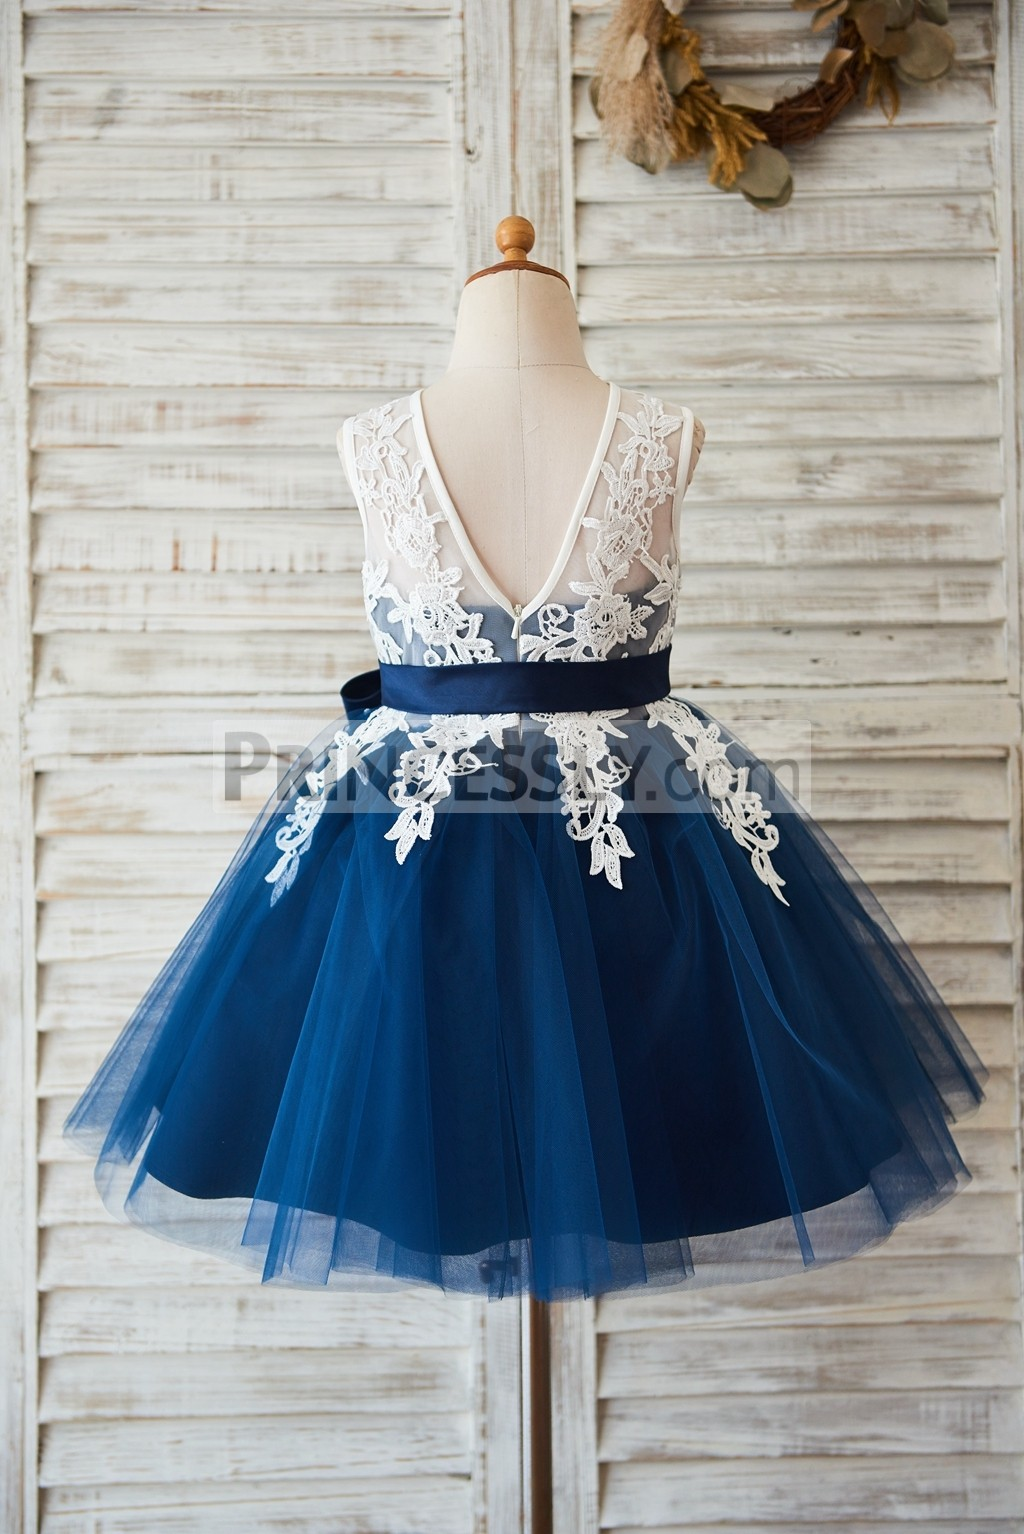 Deep V back lace navy blue tulle wedding flower girl dress